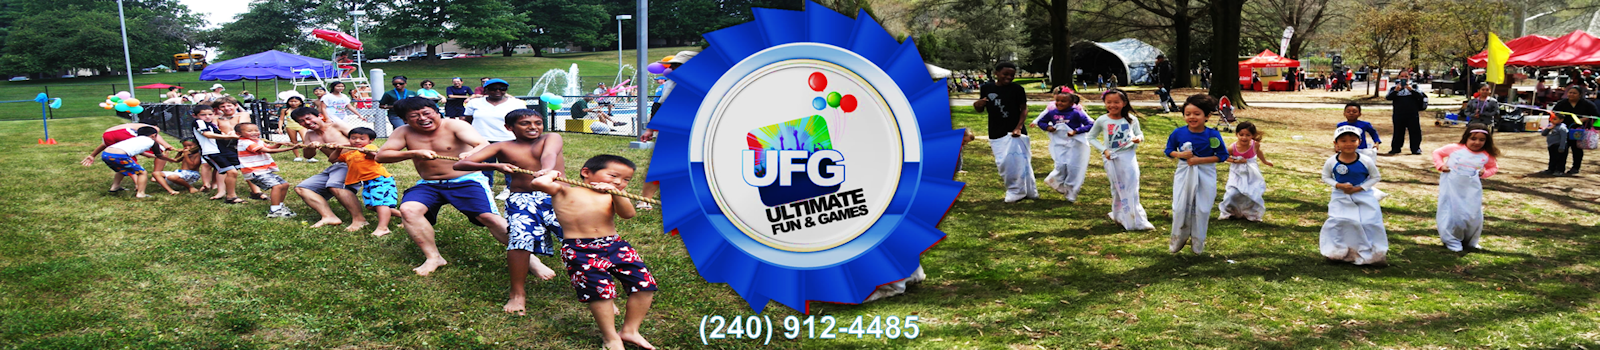 Ultimate Fun and Games